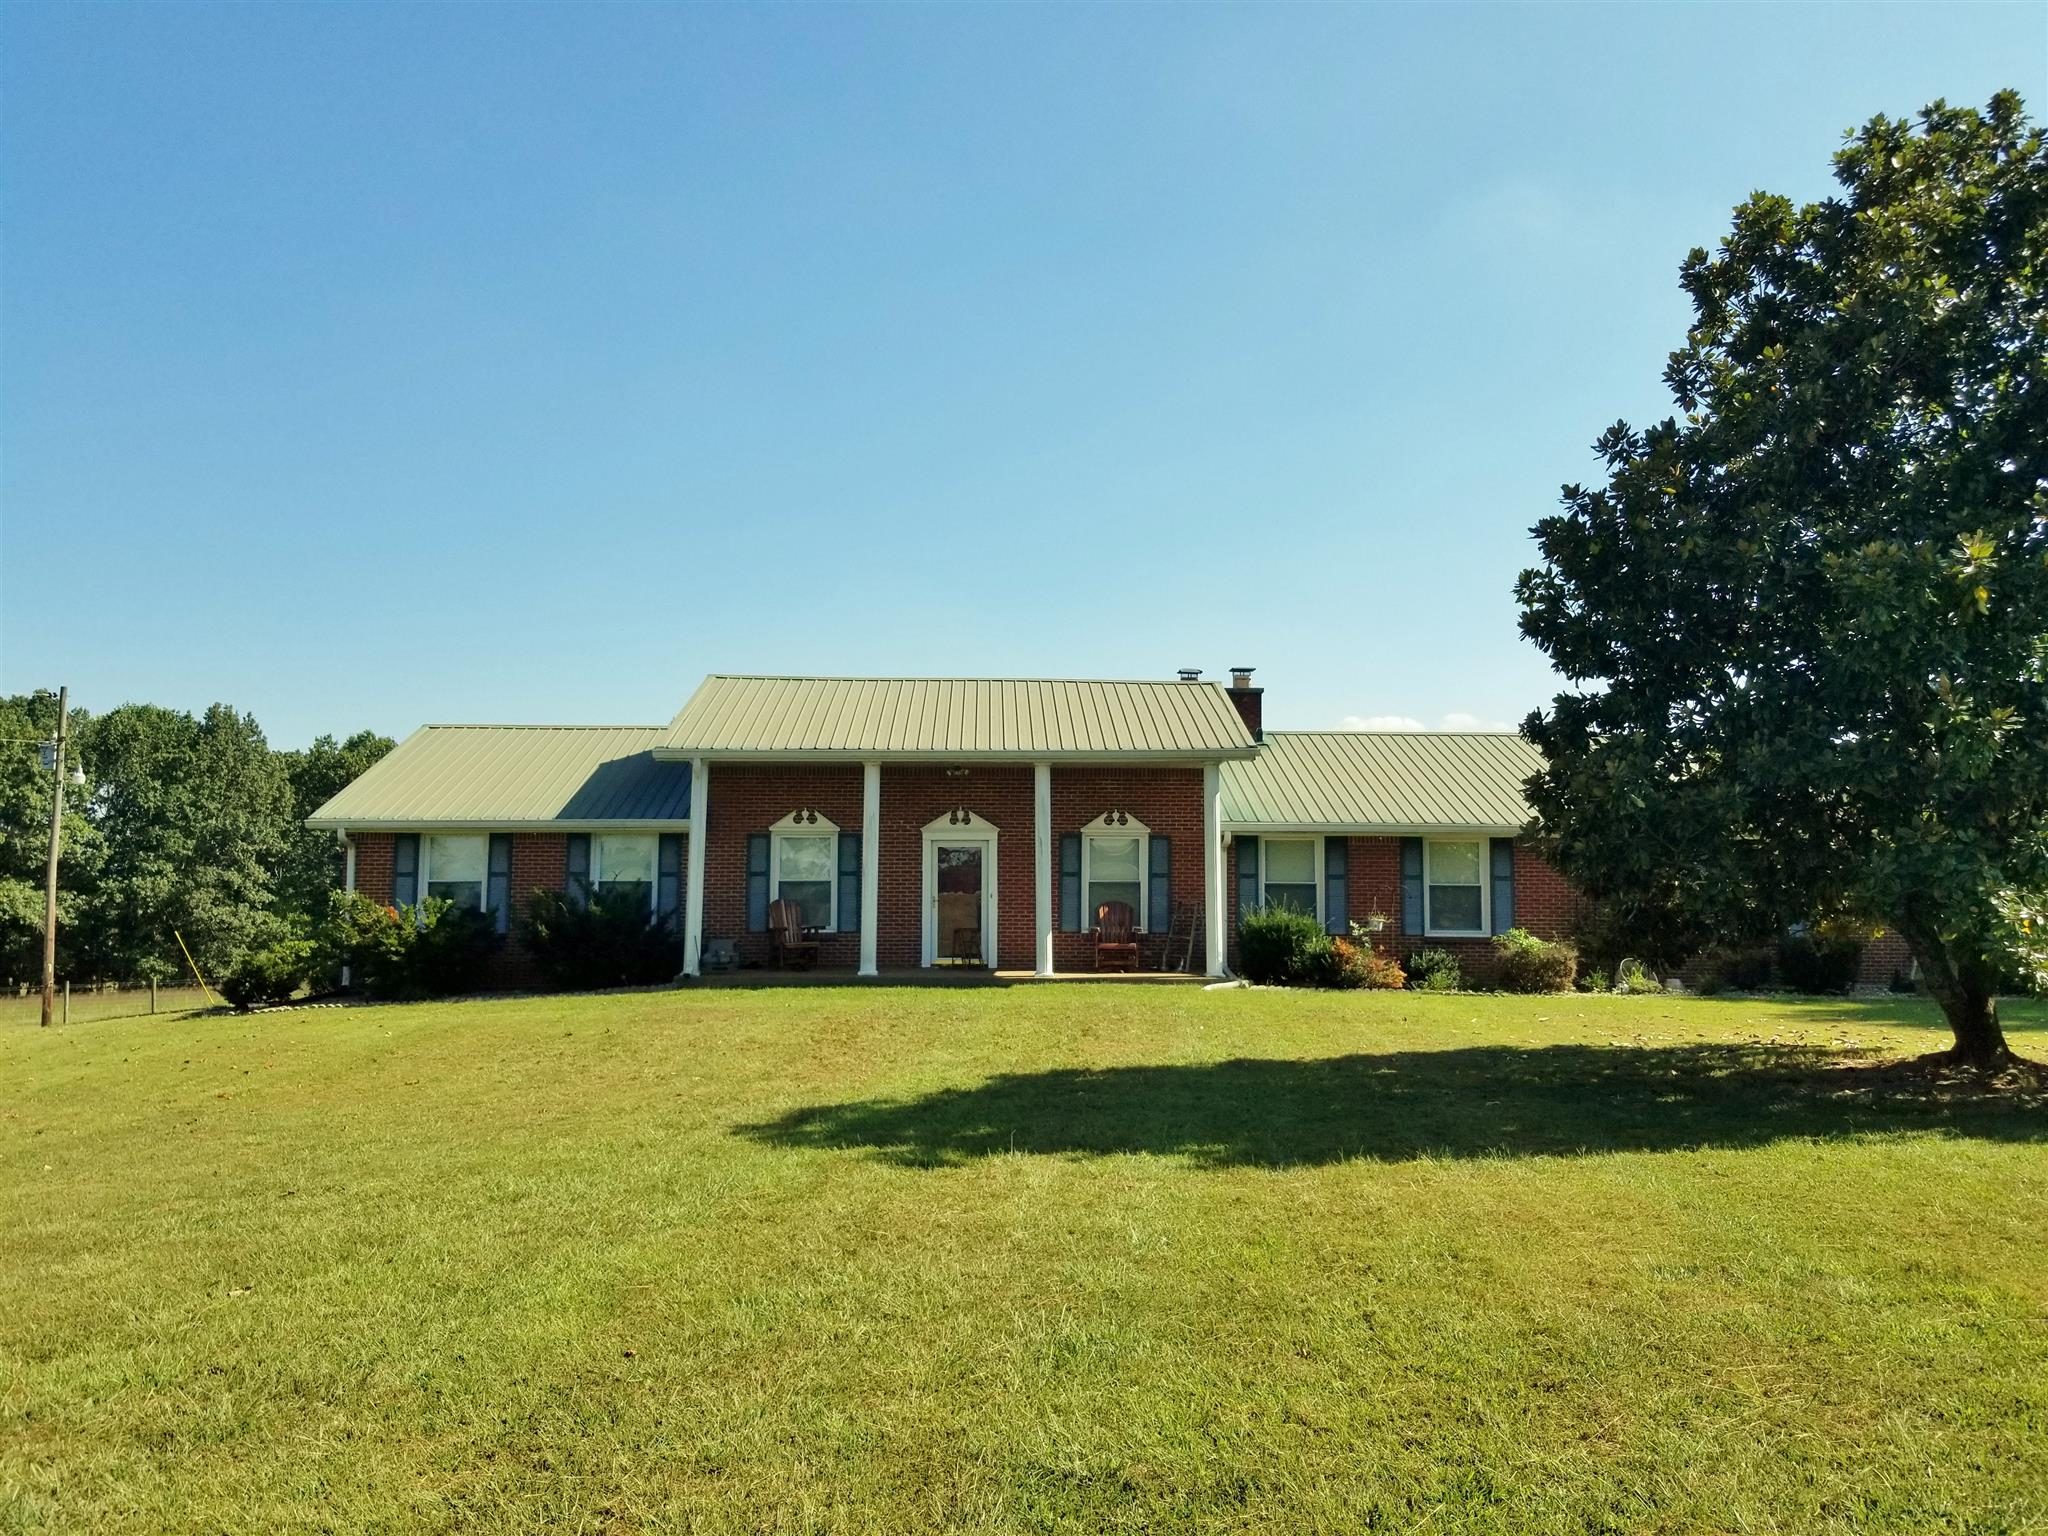 2038 Abiff Rd, Burns, TN 37029 - Burns, TN real estate listing